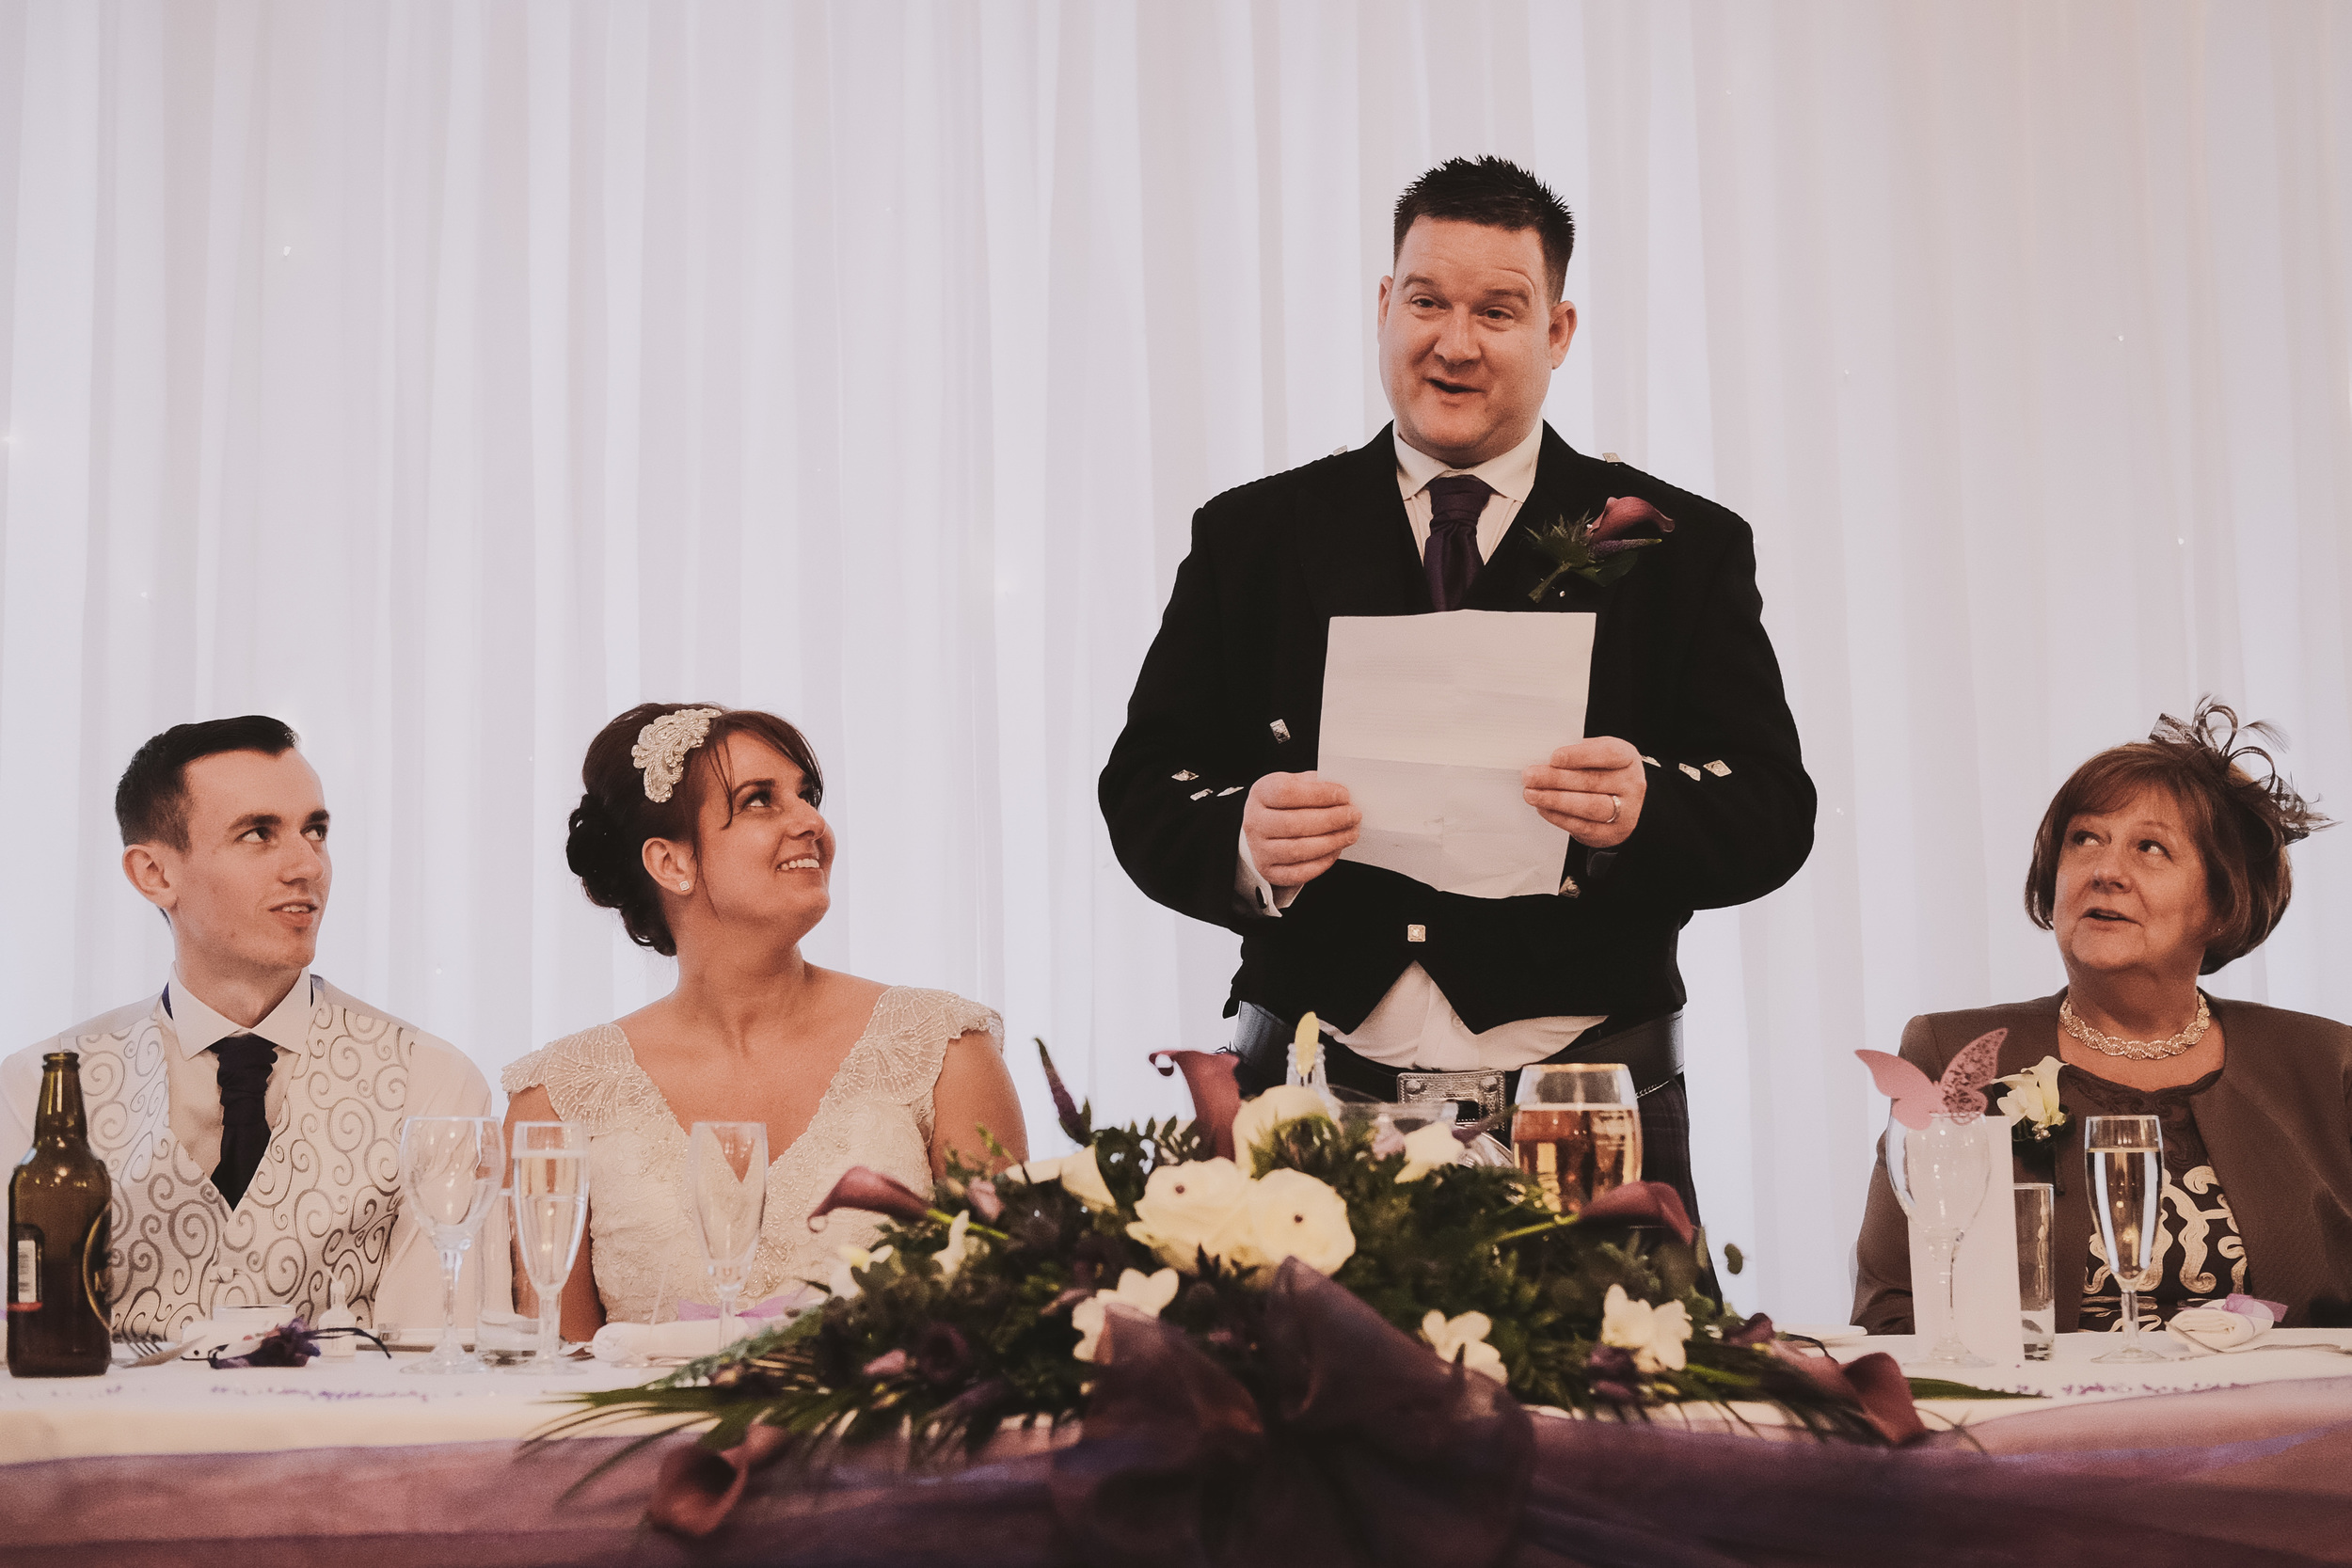 Newcastle Wedding Photographer // Groom speech